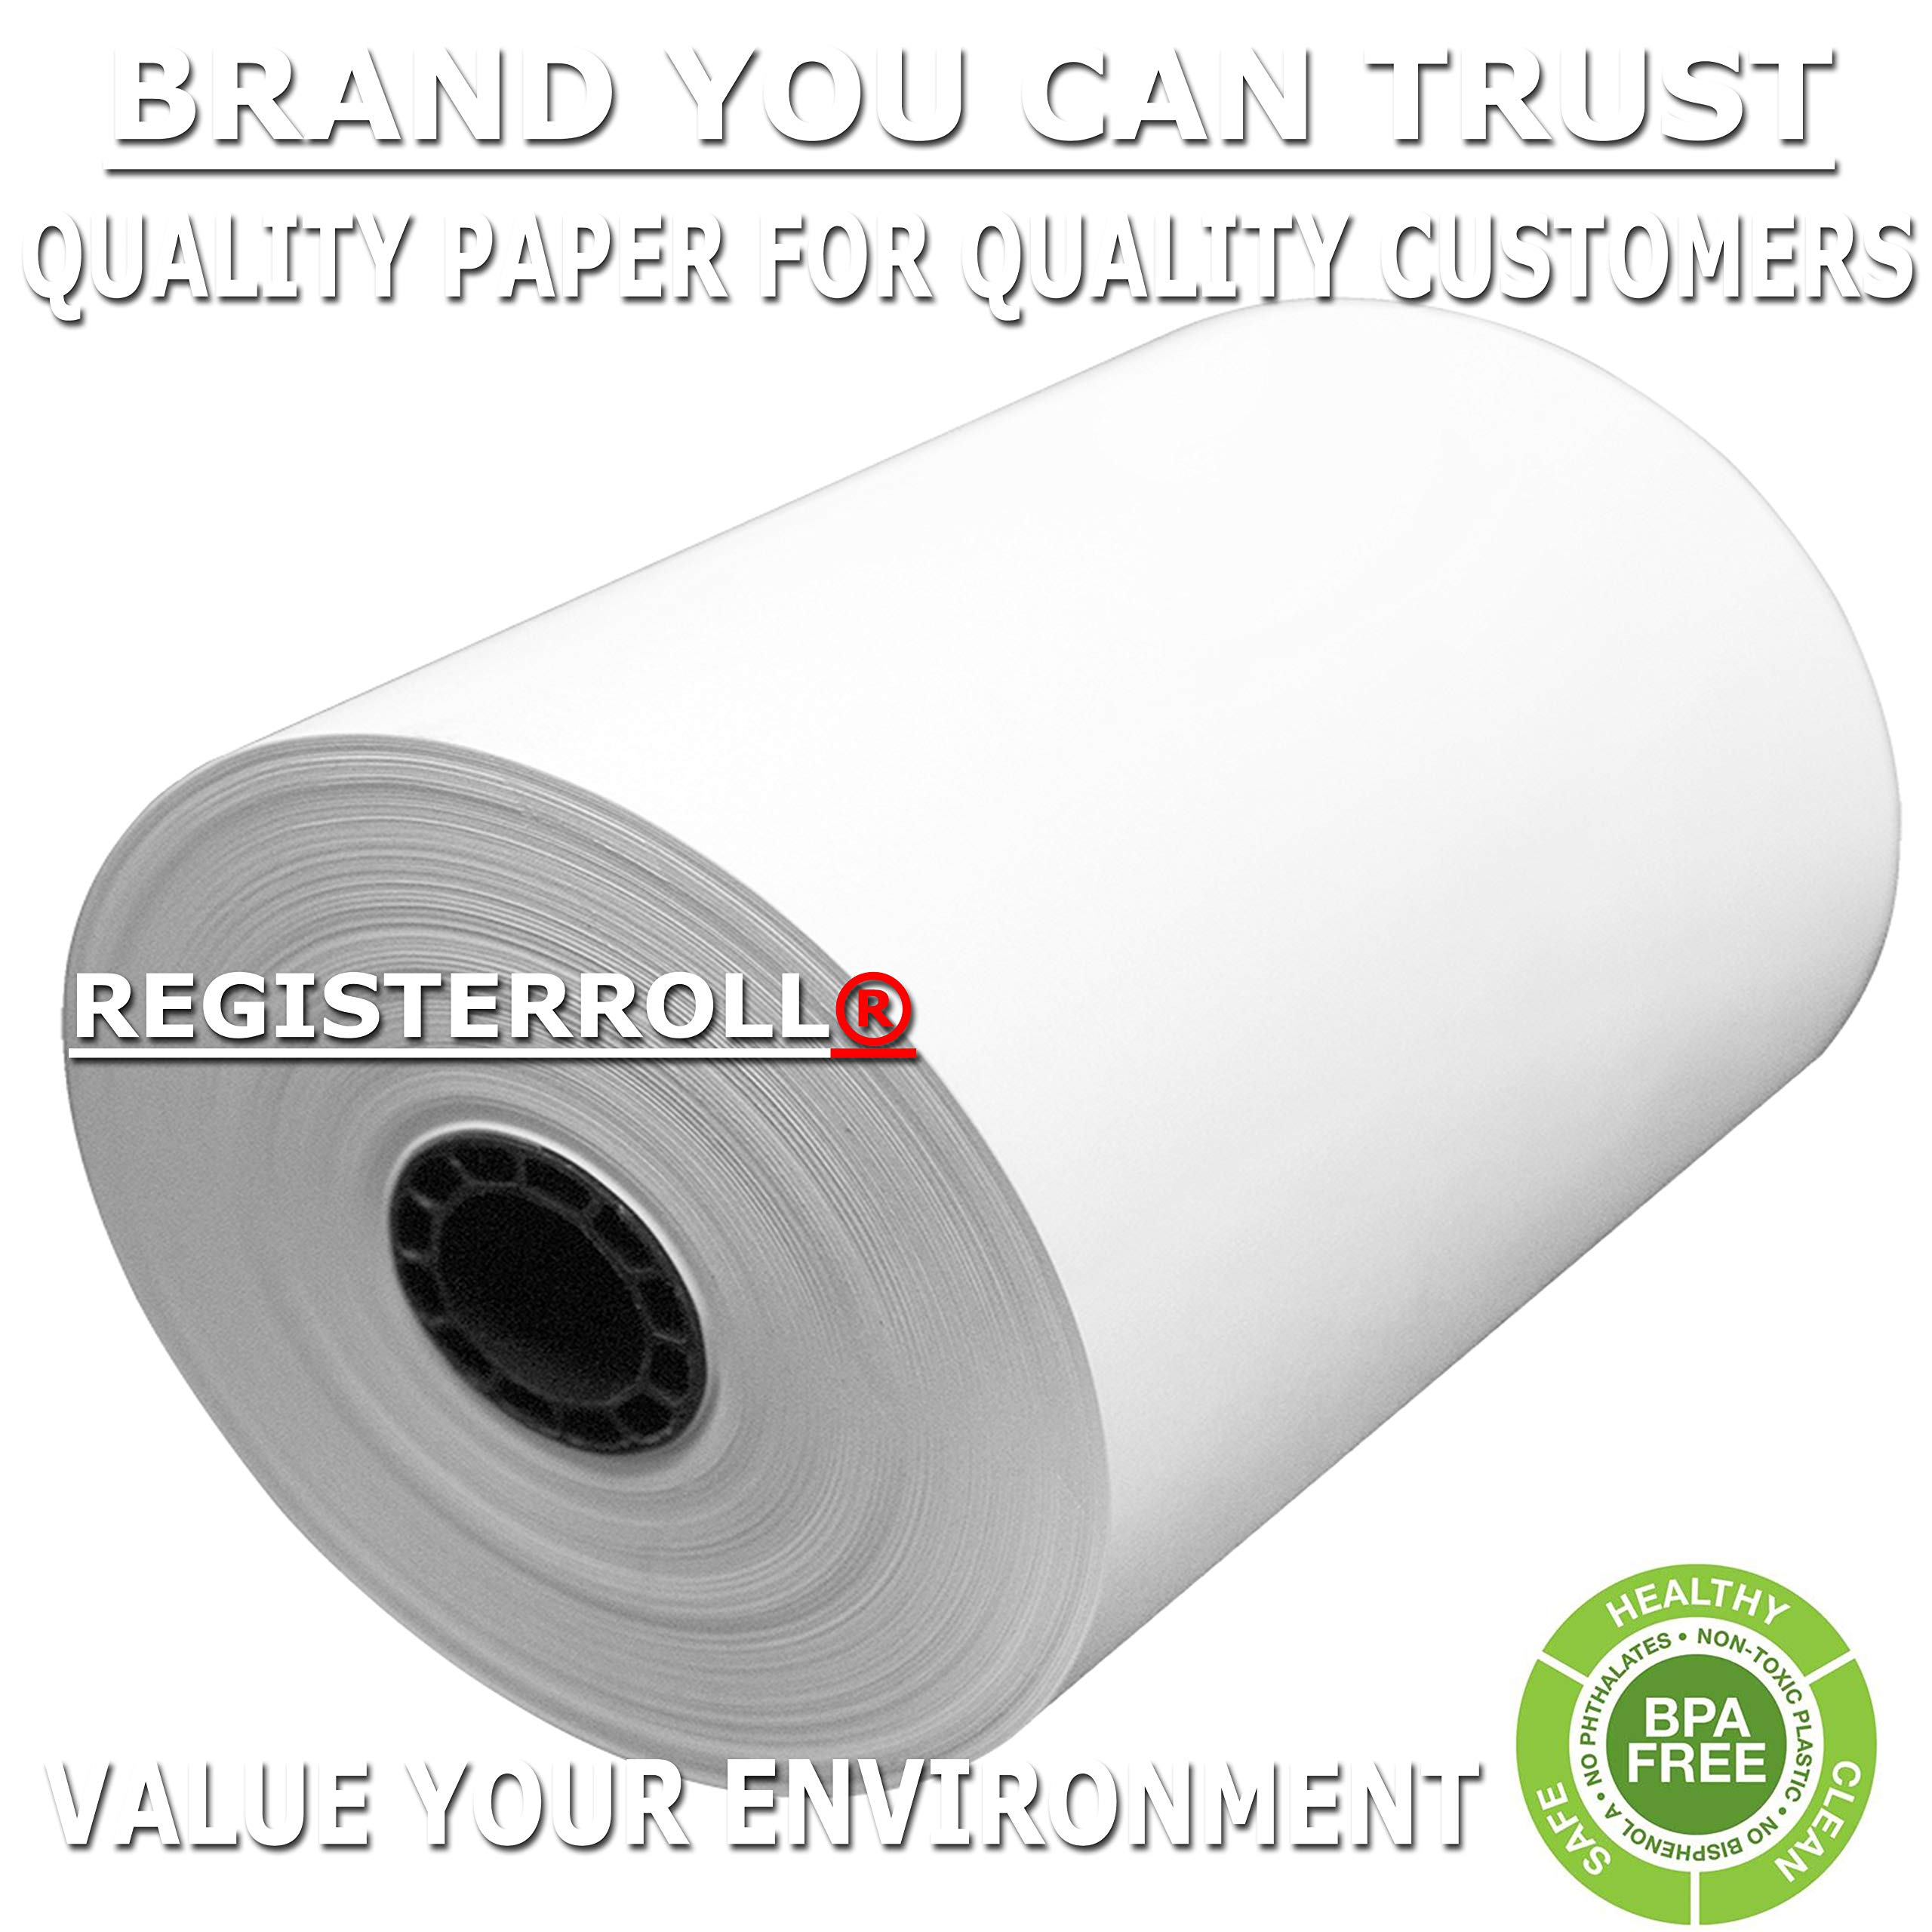 RegisterRoll 3-1/8'' x 273' (50 Rolls) Extra Long Thermal Paper Rolls BPA Free Made in USA